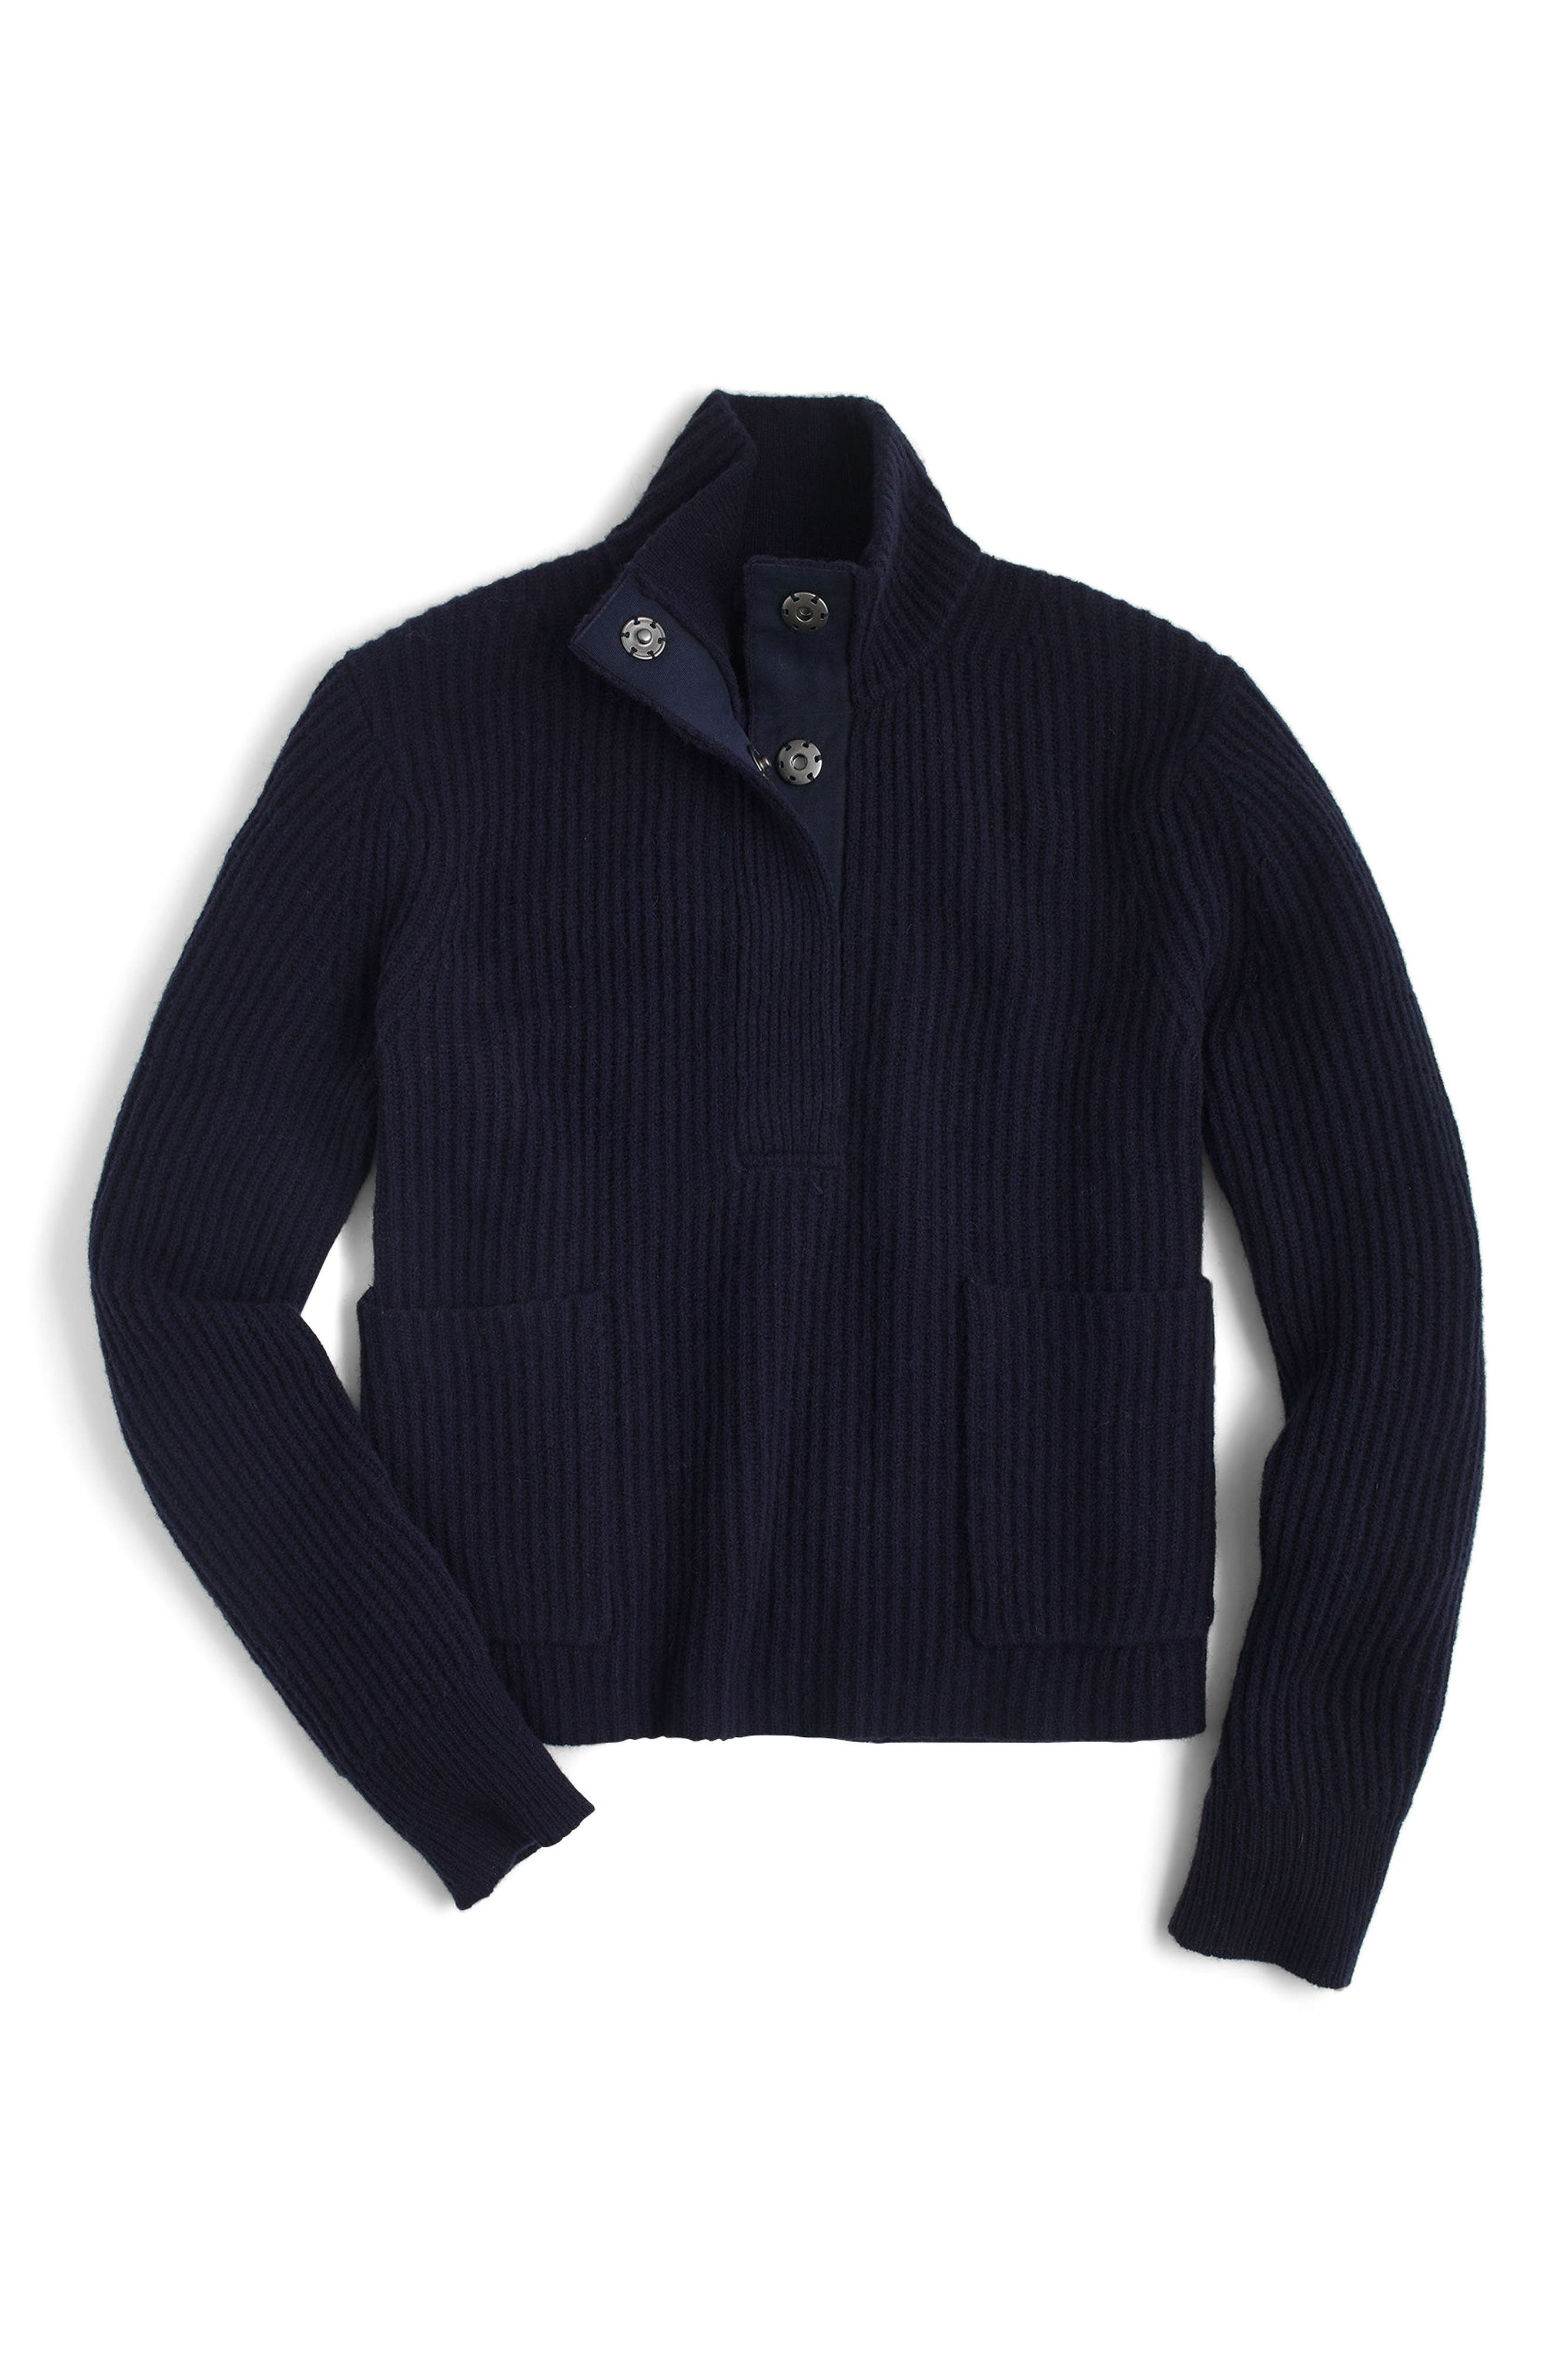 J.Crew Kay Lambswool Pullover Sweater,                             Alternate thumbnail 4, color,                             Navy